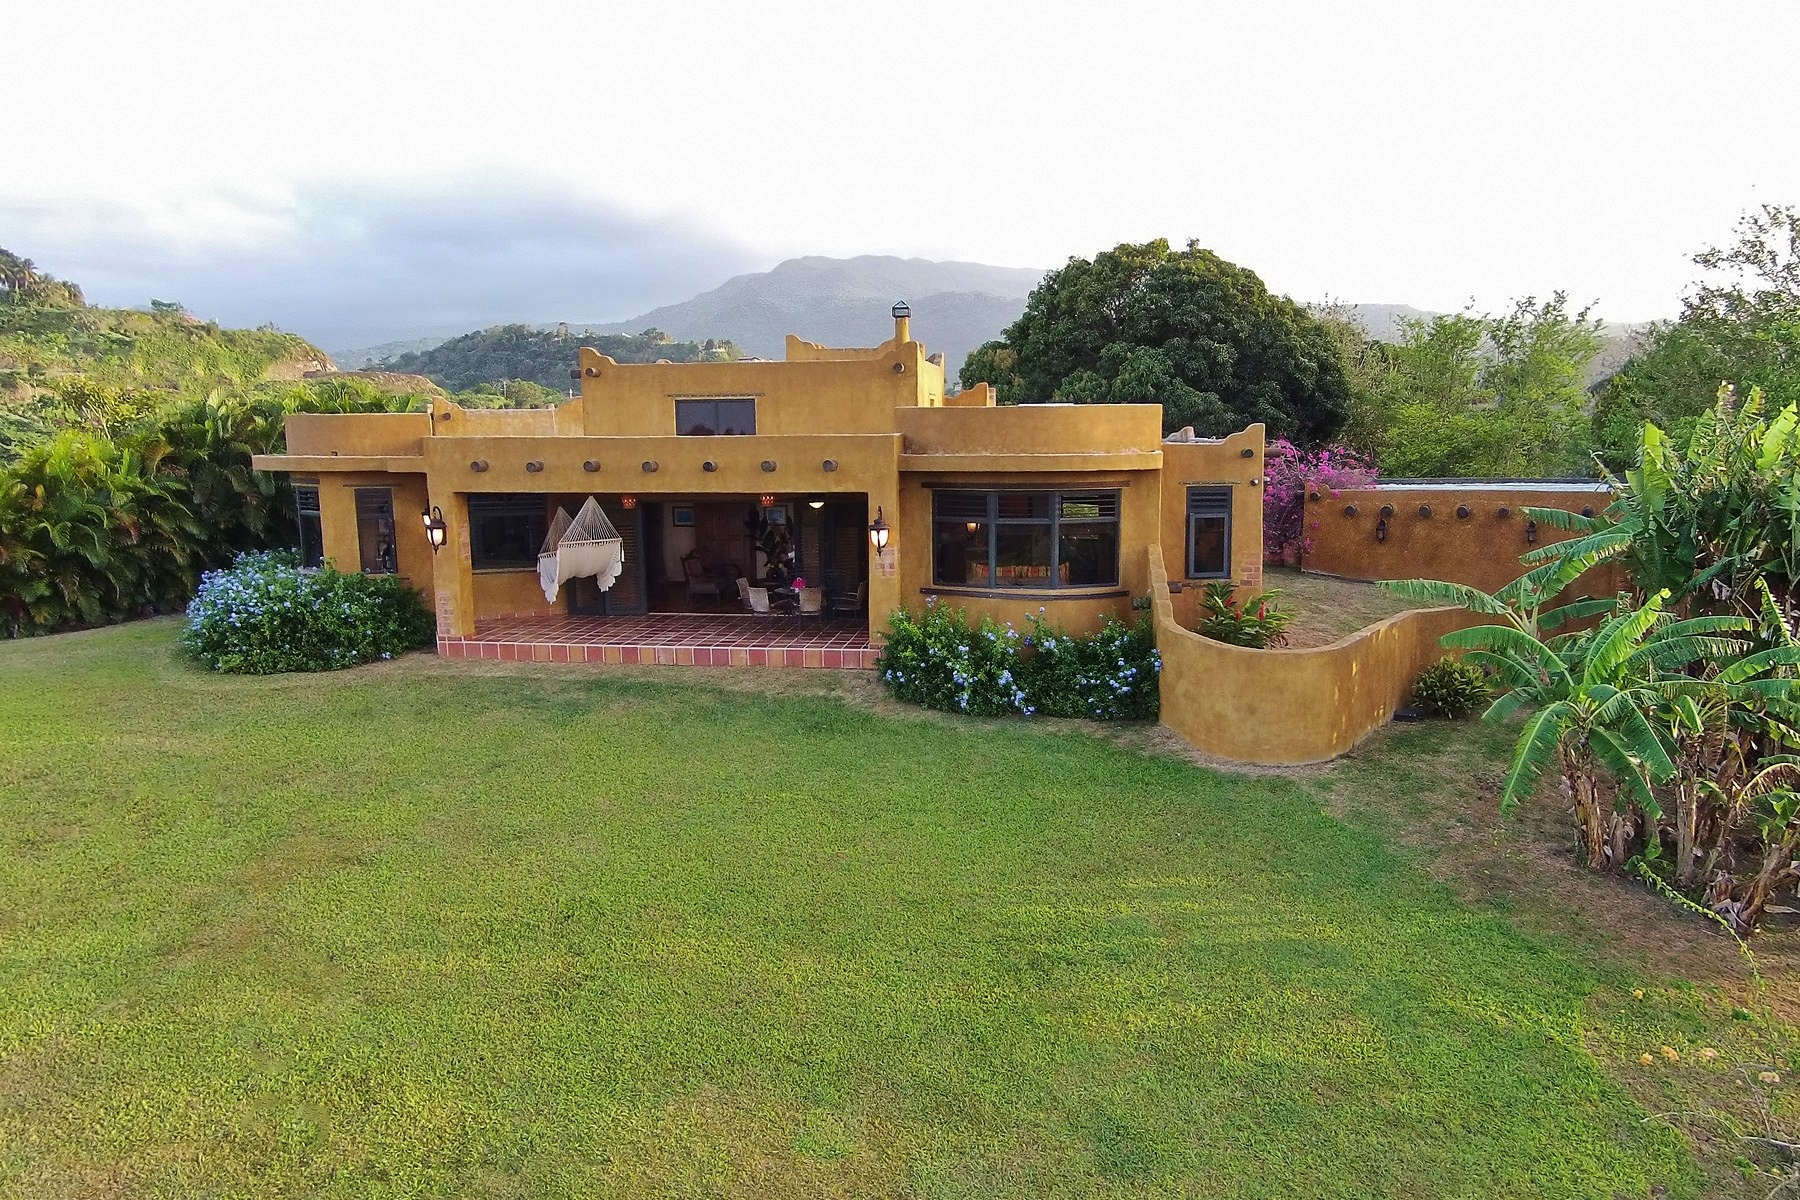 Additional photo for property listing at Rancho Soberano at Hacienda Carabali Road 3, K.M31.6 Carr 992 Street A Luquillo, Puerto Rico 00773 Puerto Rico